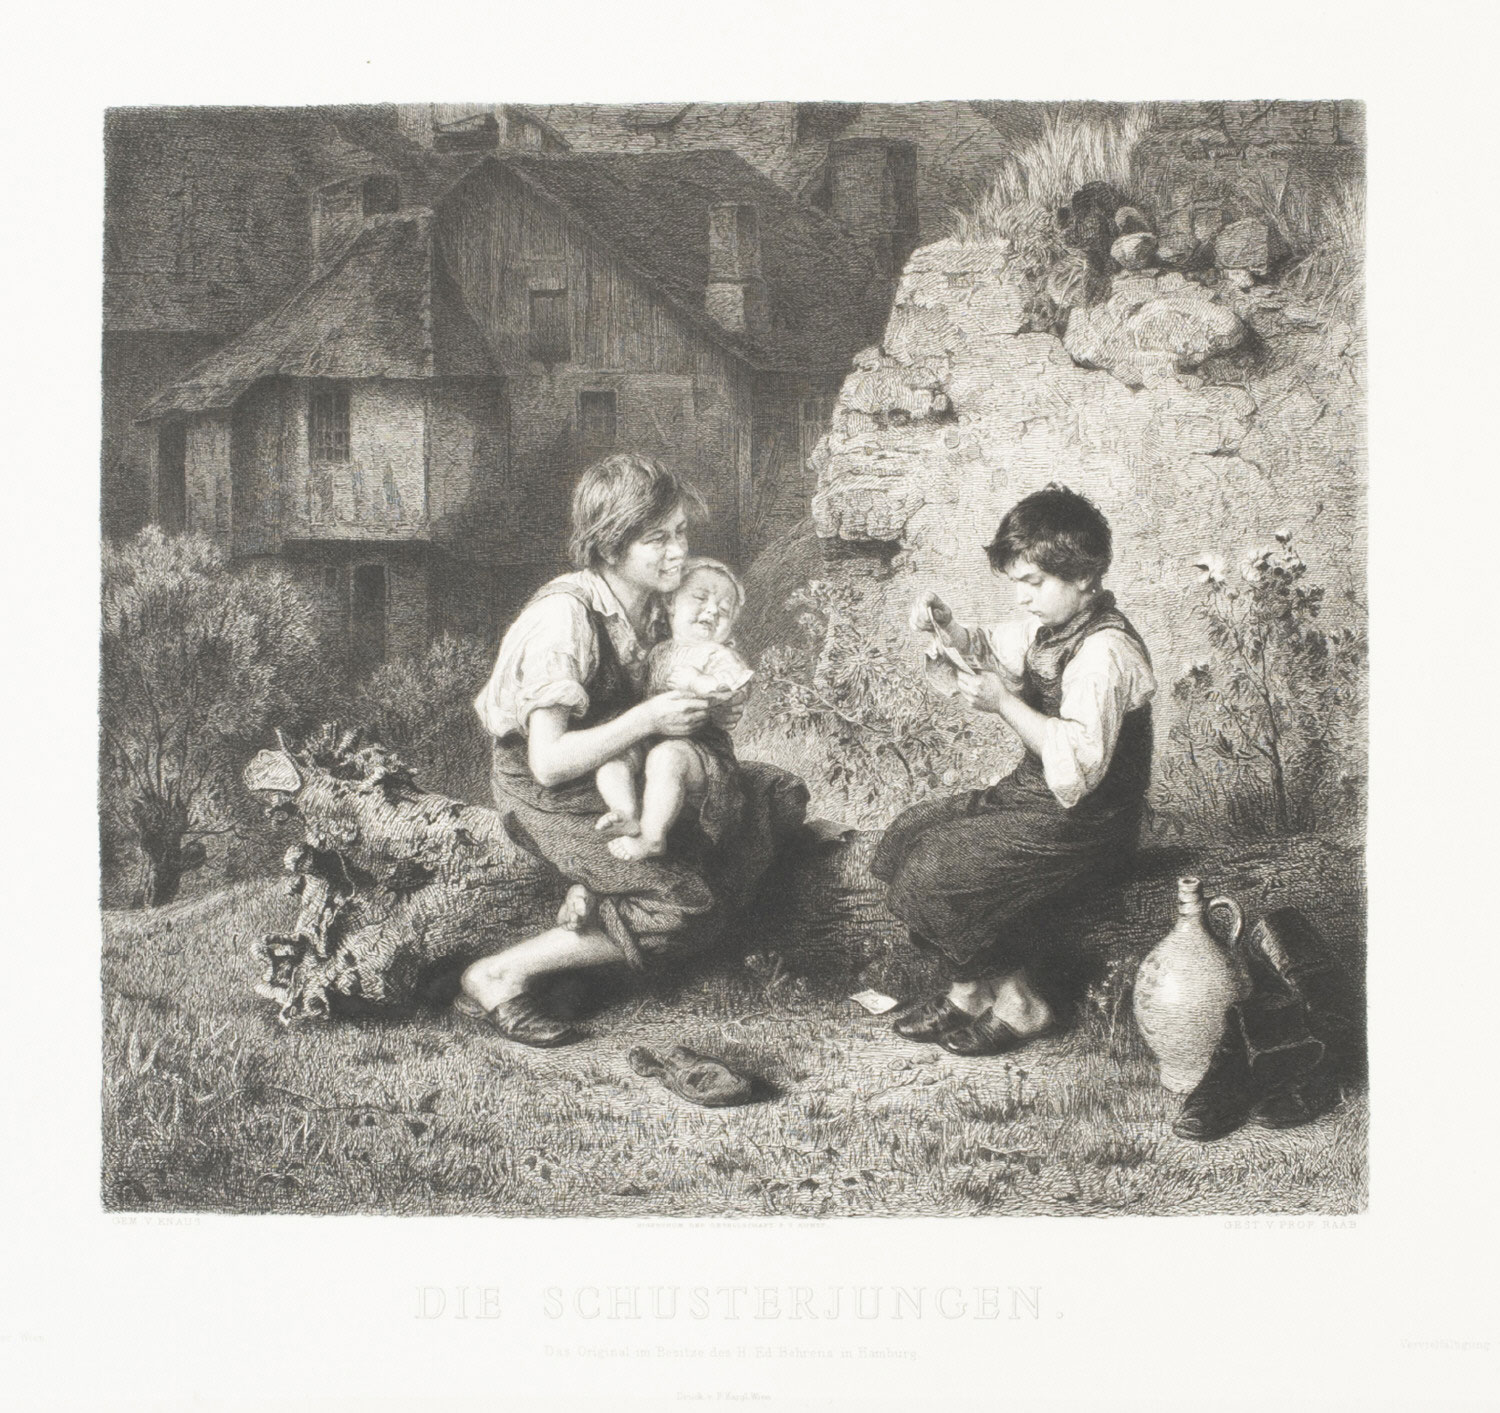 The Shoemaker's Apprentices